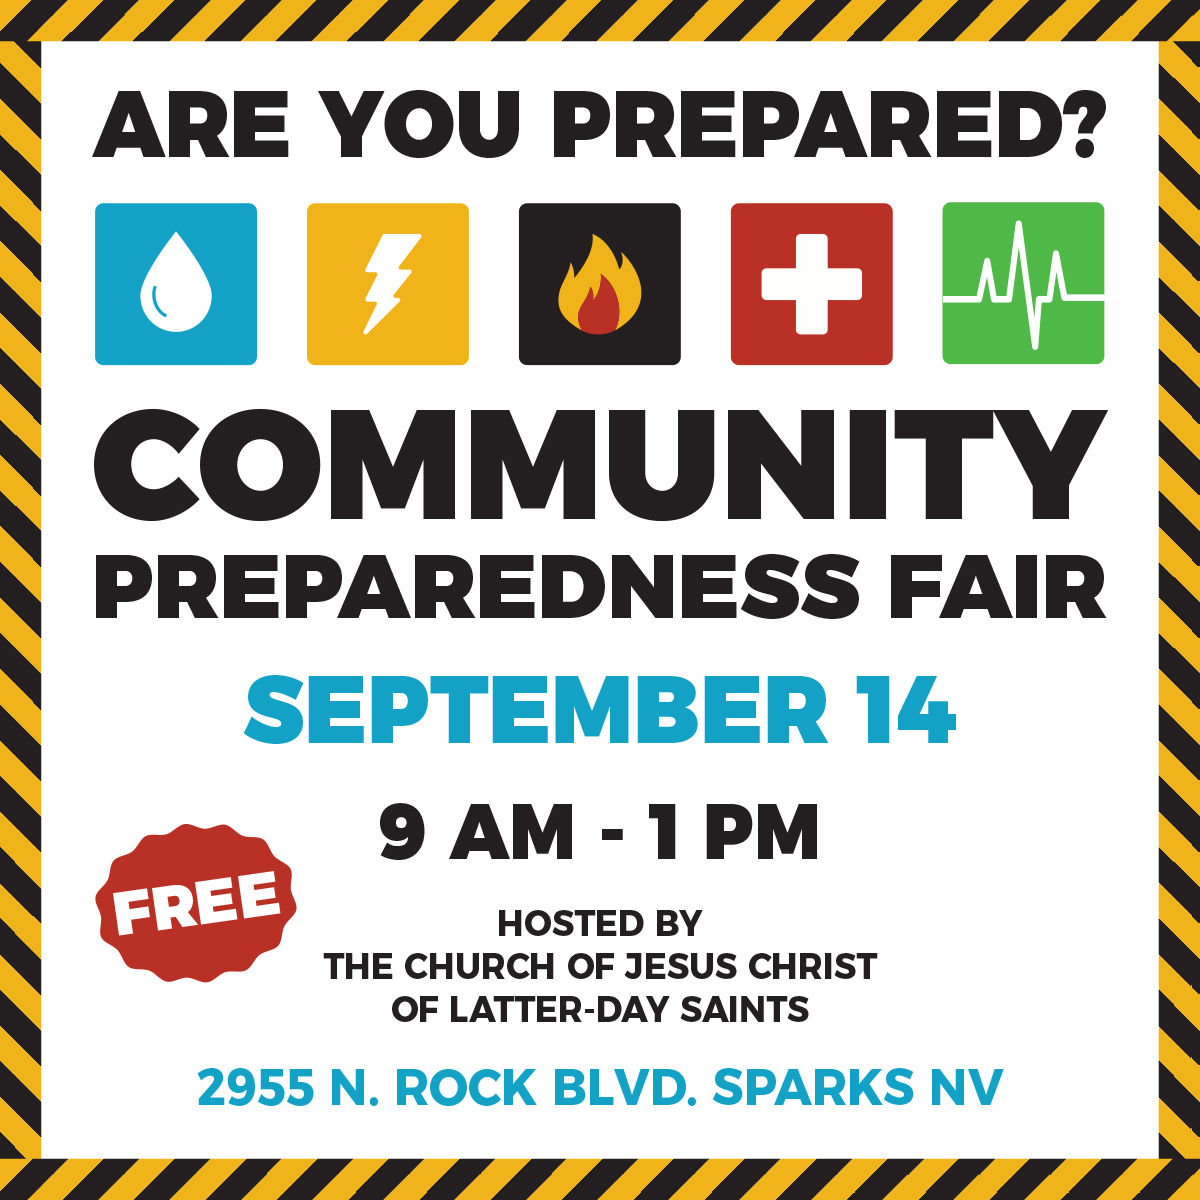 Community Preparedness Fair 2019 Social Media Square